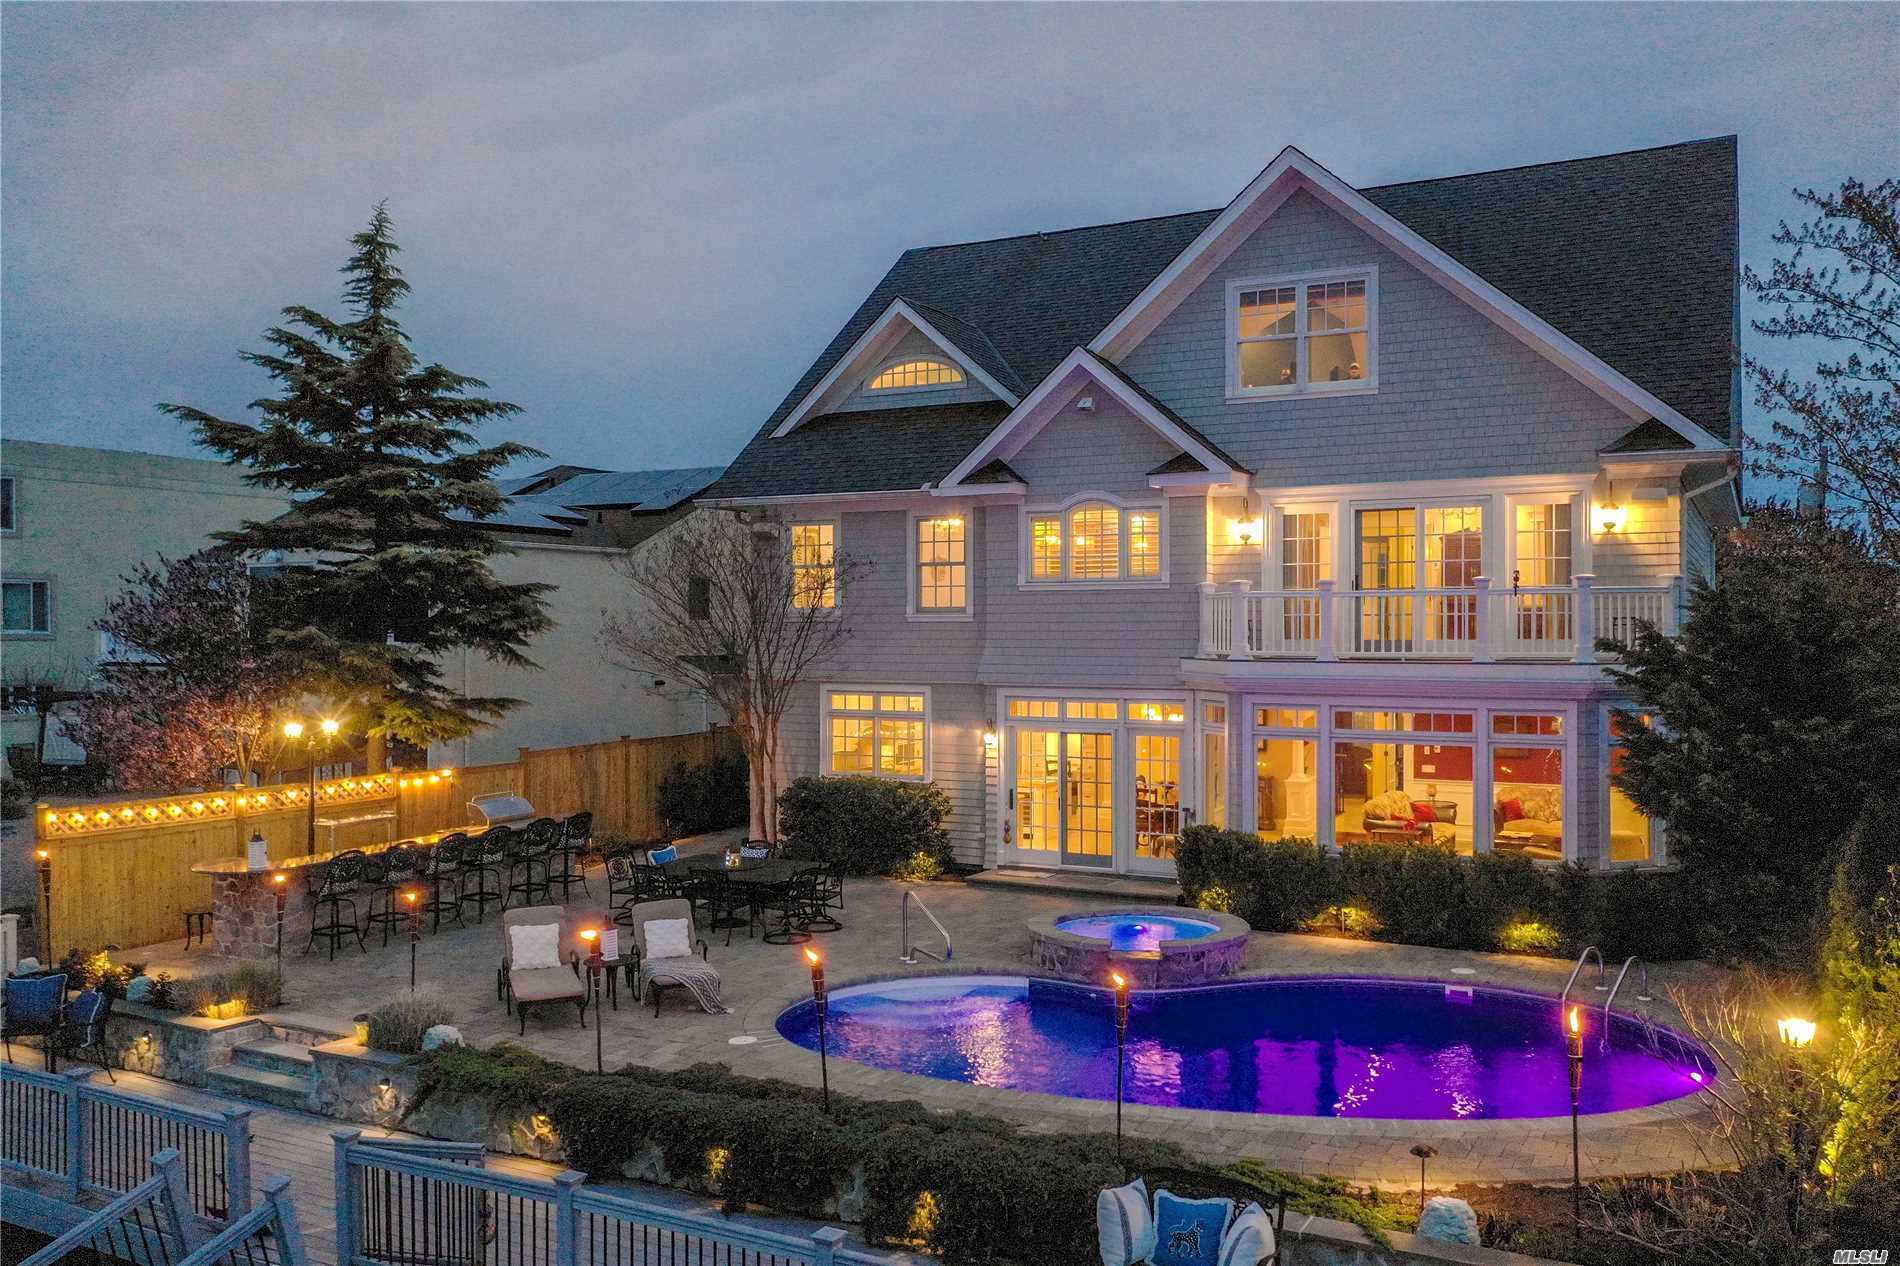 One Of A Kind Custom Built Waterfront Colonial On Resort Style Property. Open Floor-Plan, High-End Interior Trim & Designer Finishes Throughout, Chef Style Kitchen & Spacious Entertaining Areas. Brazilian Cherry Radiant Heated Floors, Surround Sound Speakers, Heated Saltwater Pool, Granite Bar, Large Floating Dock & An Endless Backyard!!